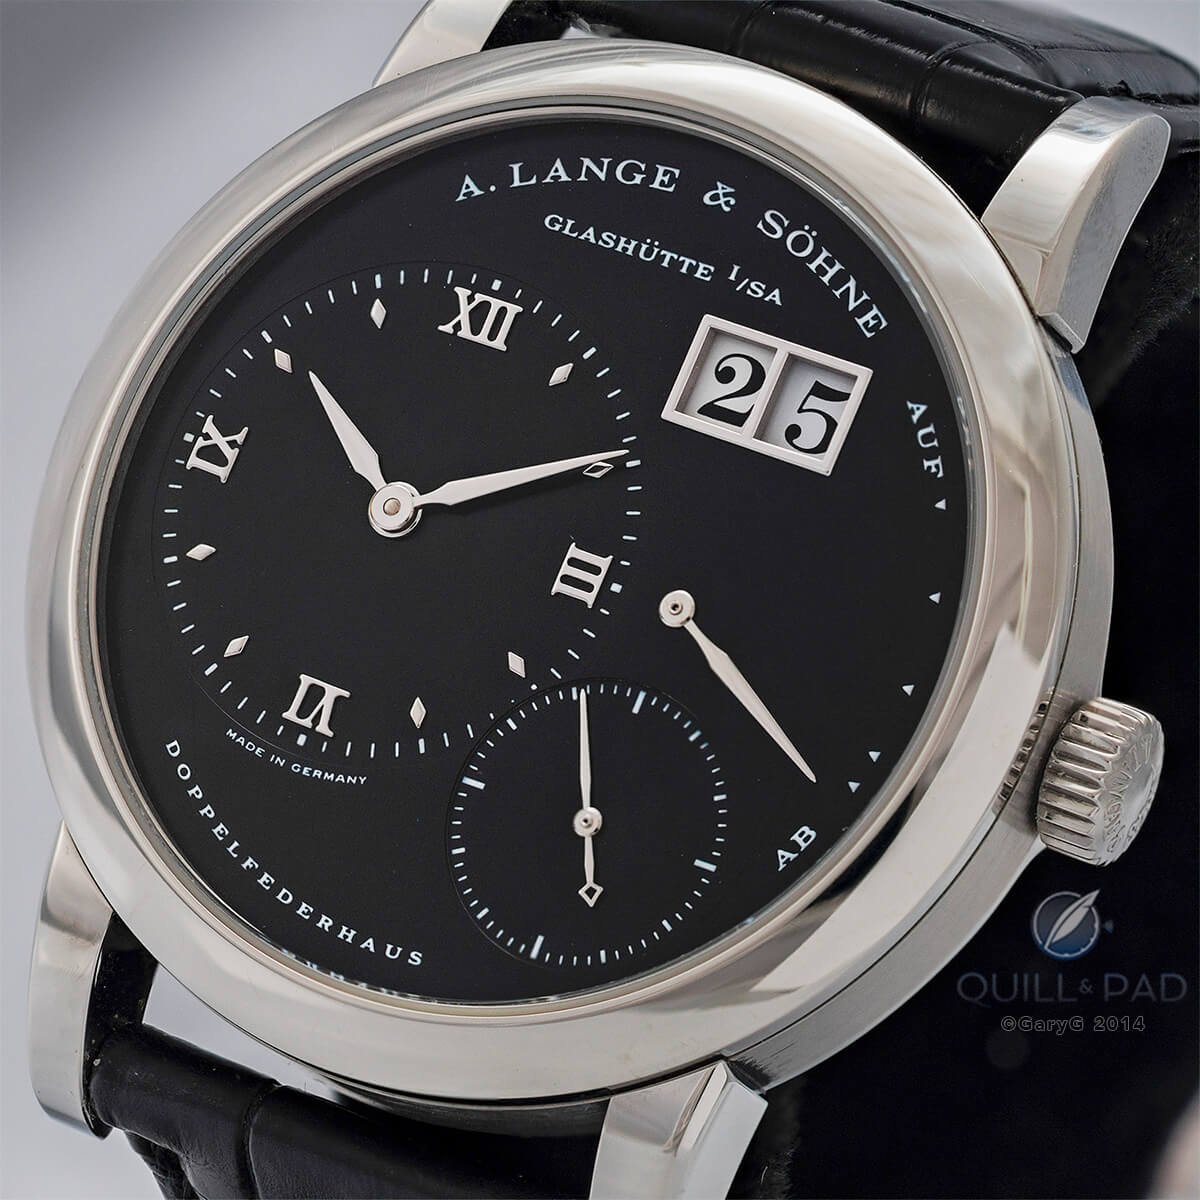 A. Lange & Söhne Lange 1 with black dial and rare stainless steel case